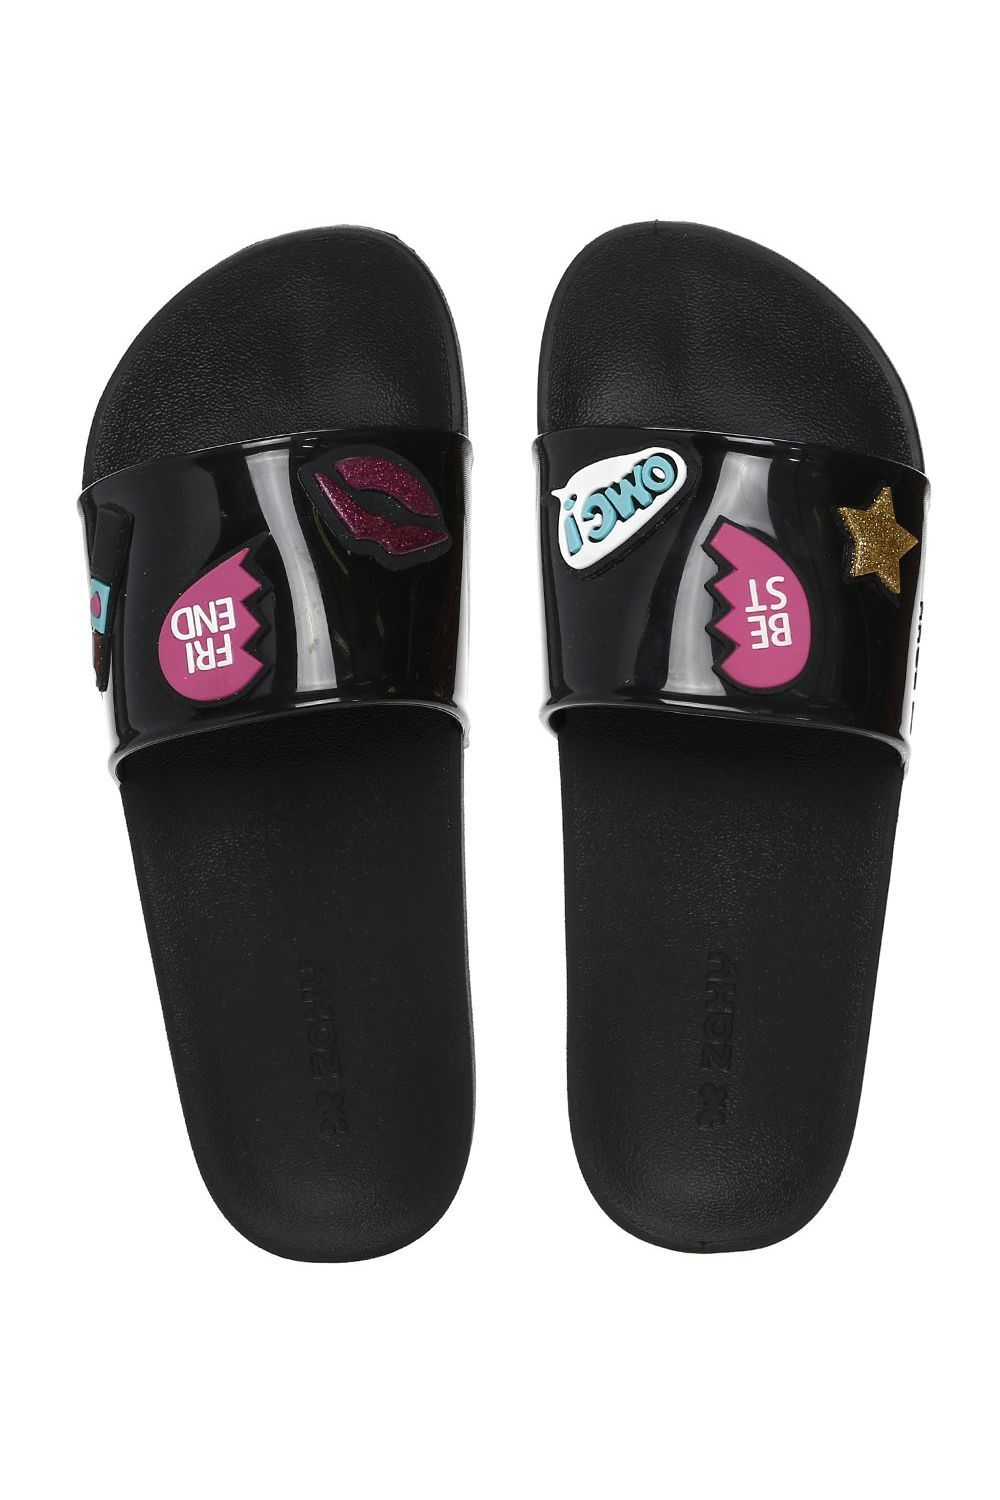 6a97e2b8751bbe Chinelo Slide Feminino Zaxy Preto/estampado - Moda it | Wishlist em ...